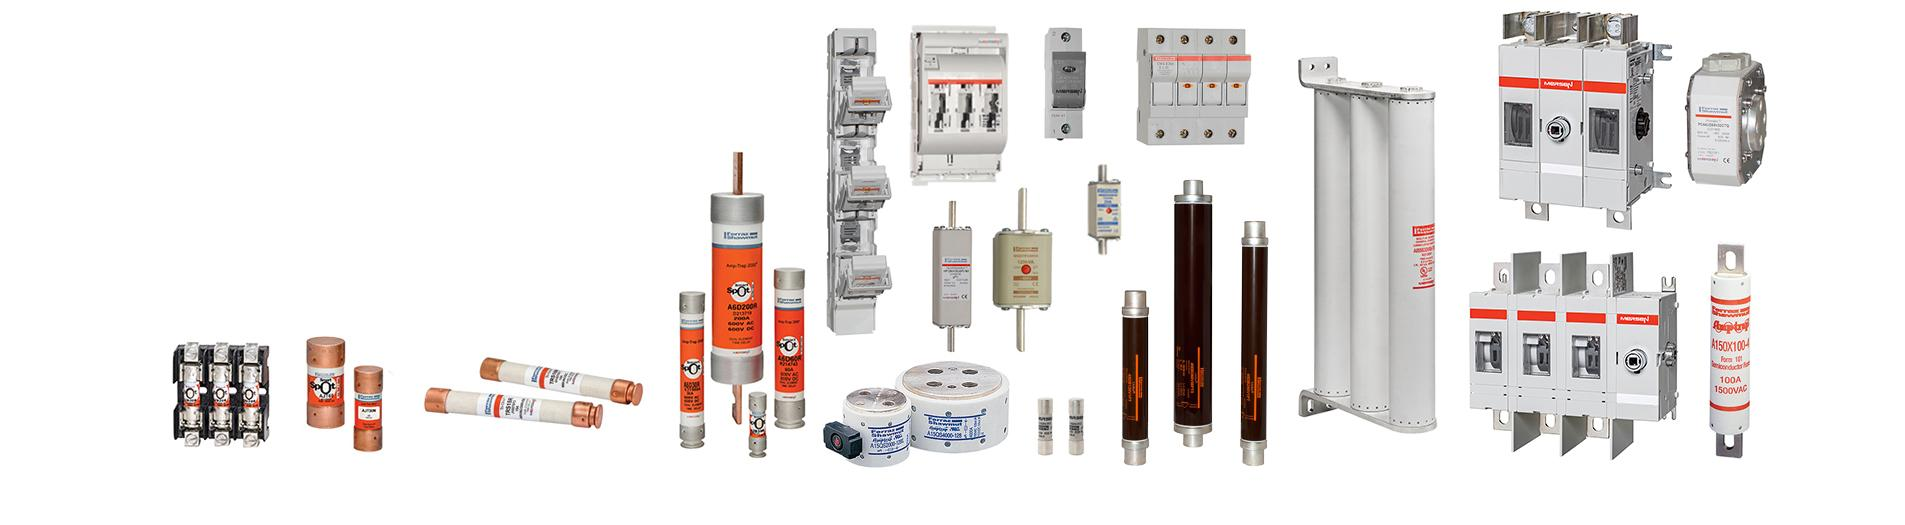 medium resolution of  welcome page photo of global fuses and fusegear